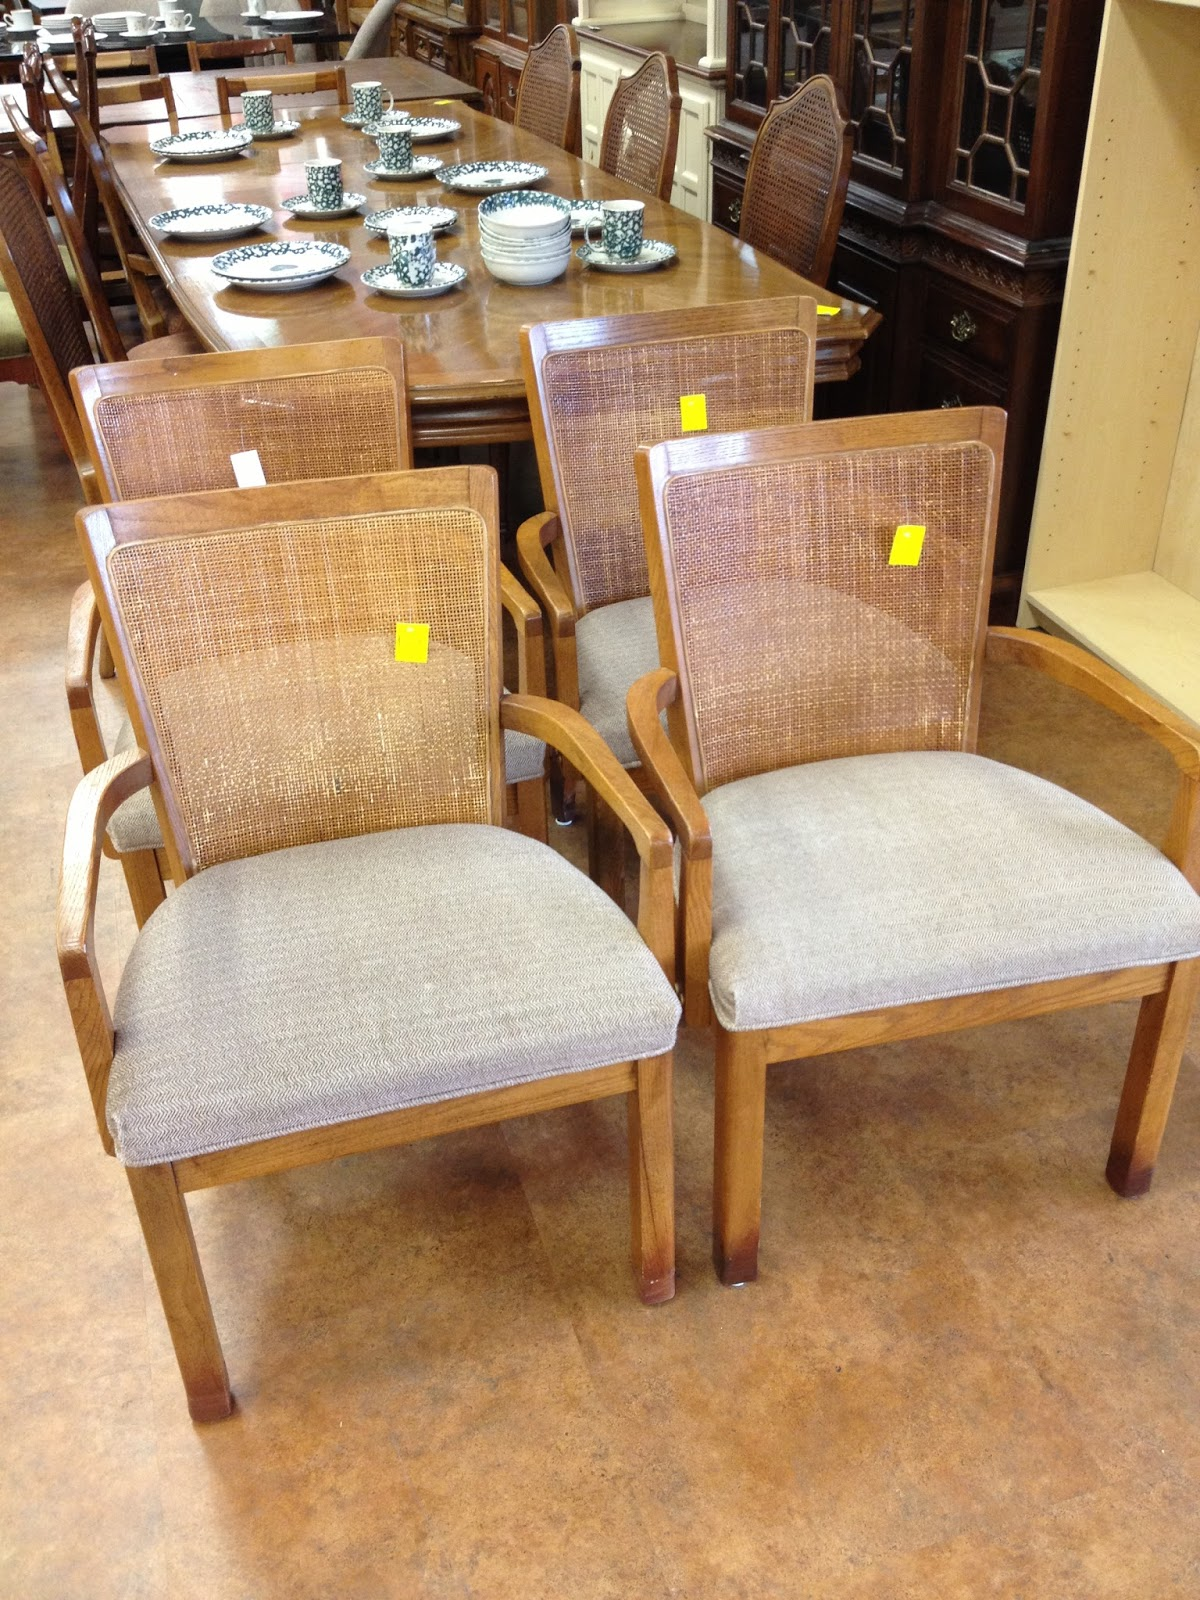 Kitchen Chairs Antique Cane Bottom Rocking Chair The Happy Homebodies Makeover Thrift Store